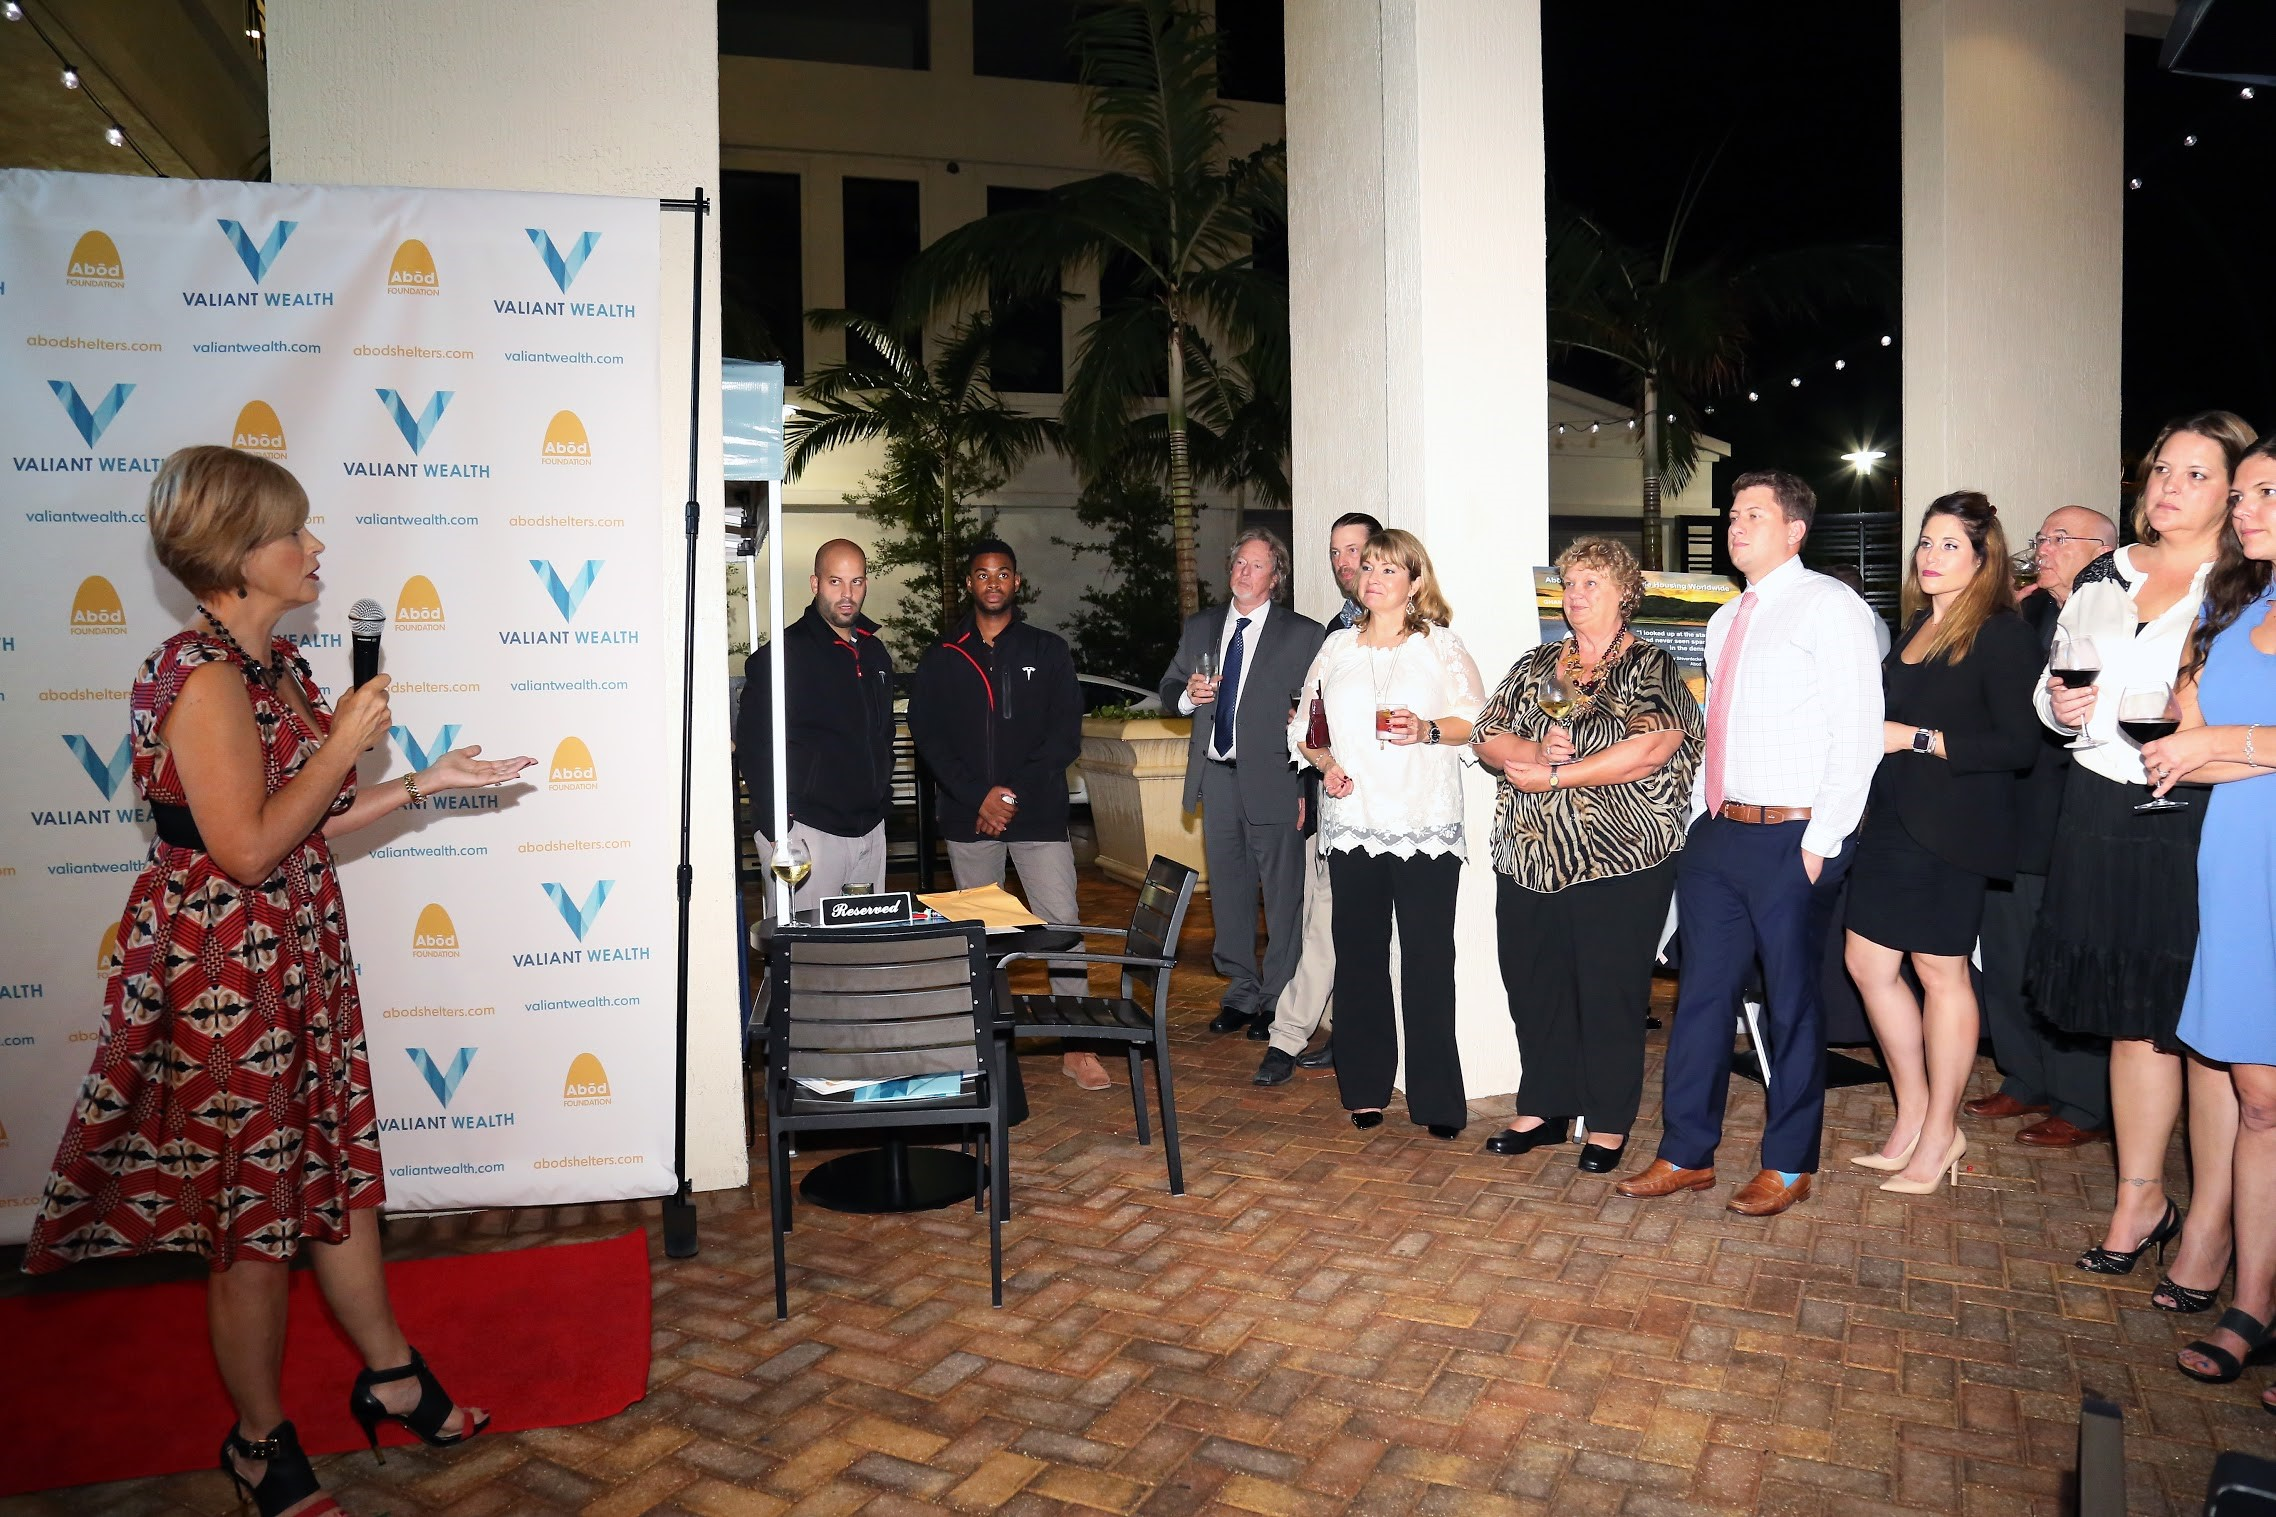 Abōd Shelters Foundation Debuts in Florida at Valiant Wealth Fundraiser